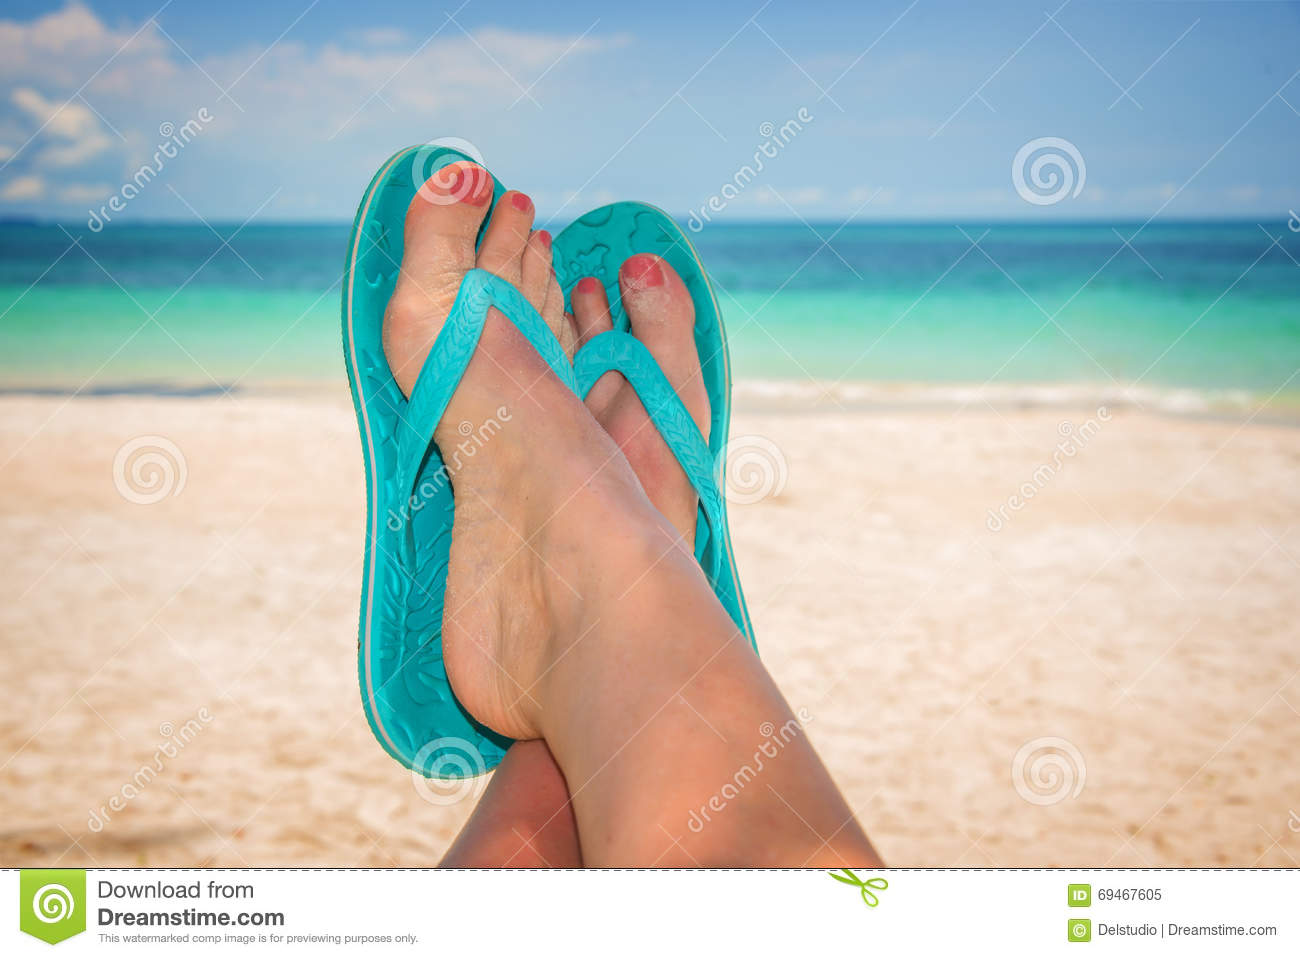 2085e3e711fe5 Legs Feet Selfie Beach Stock Images - Download 139 Royalty Free Photos